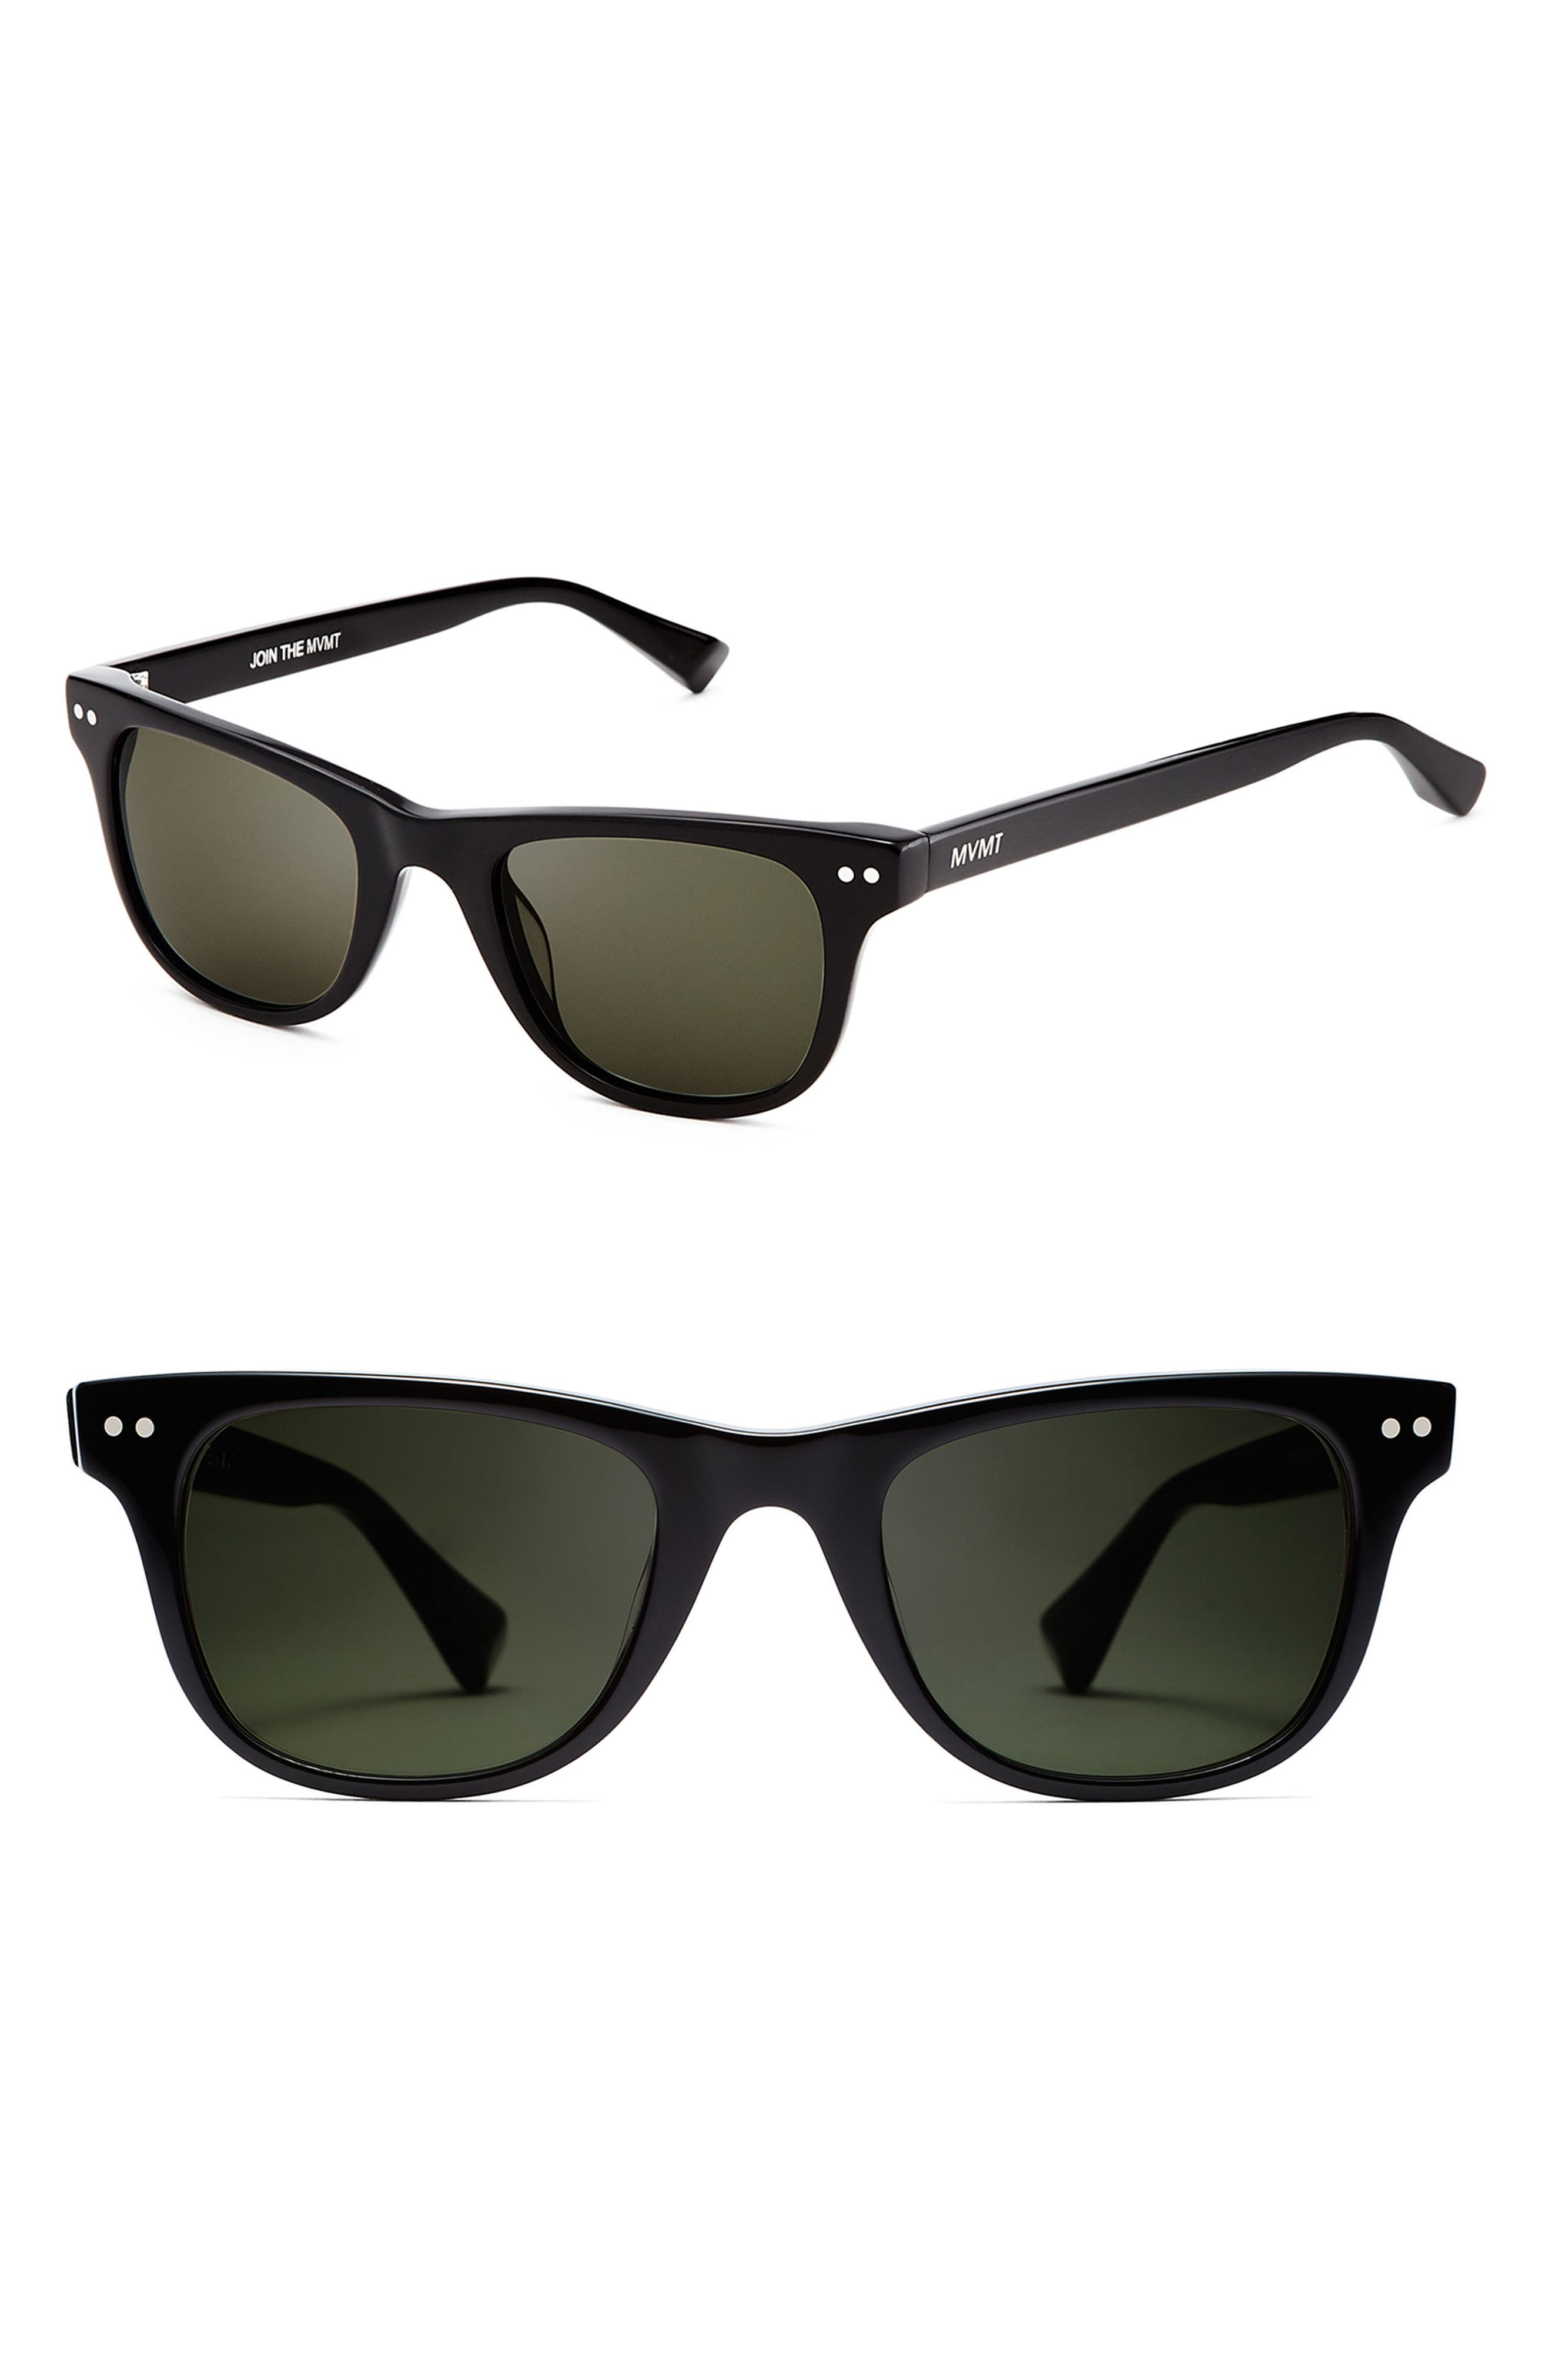 Outsider 51mm Polarized Sunglasses,                         Main,                         color, PURE BLACK